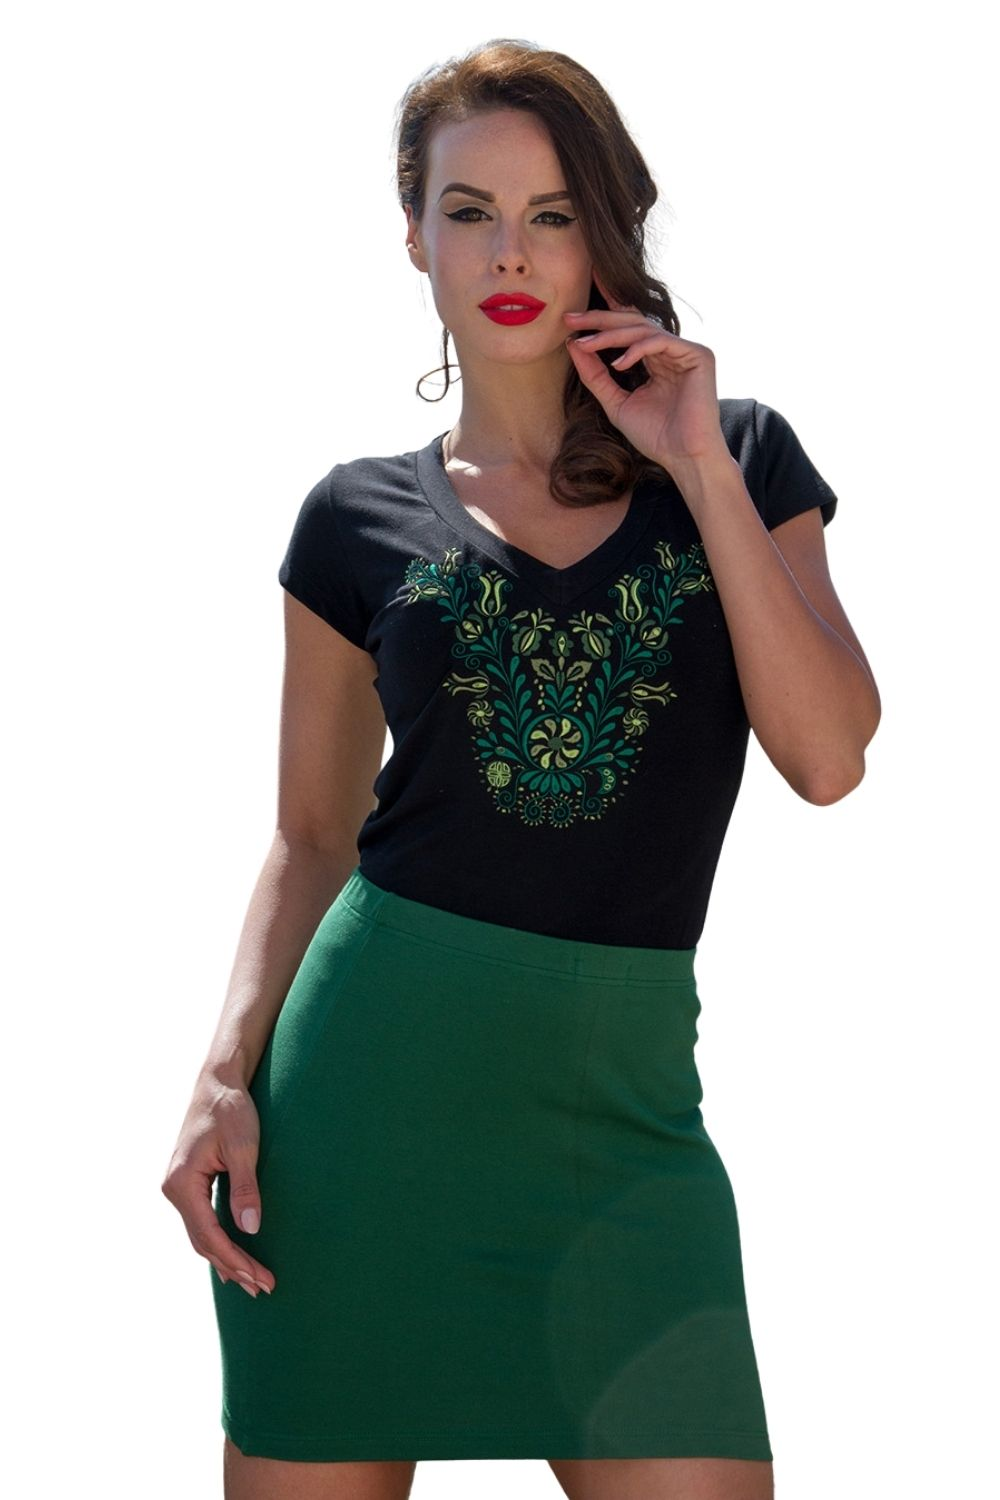 Jaszsagi Embroidered Women's T-shirt Black With Green Motif 'V' Neck at 3 Barn Swallows, $41